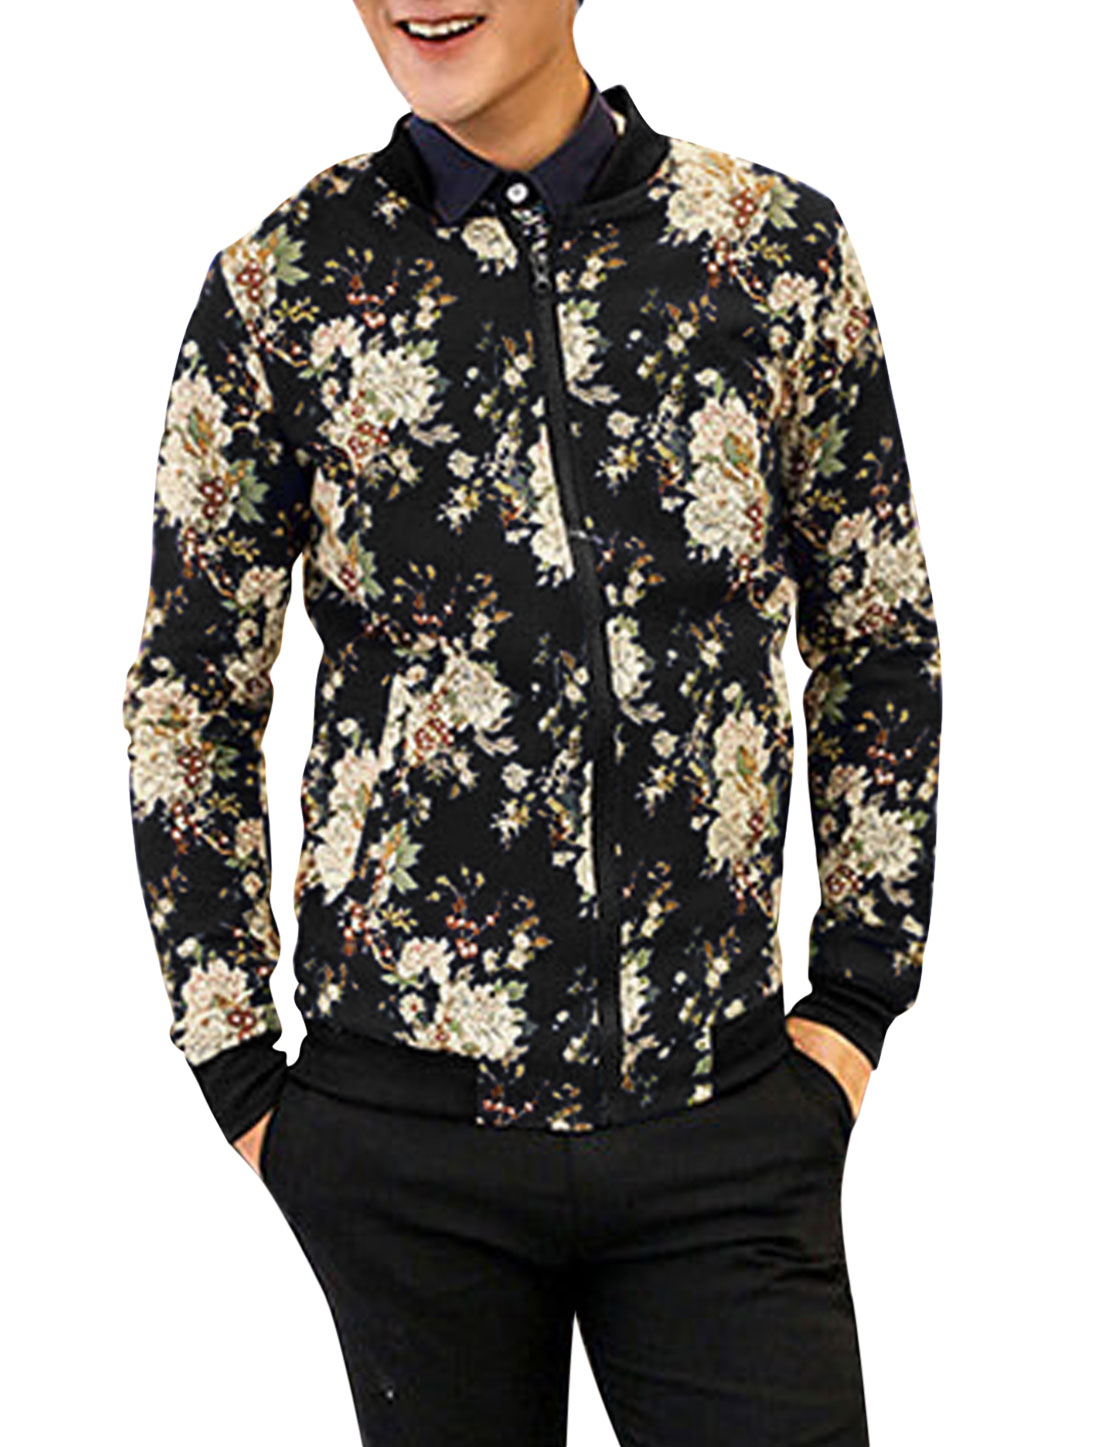 New Style Floral Pattern Stand Collar Fashion Jacket for Men Black S